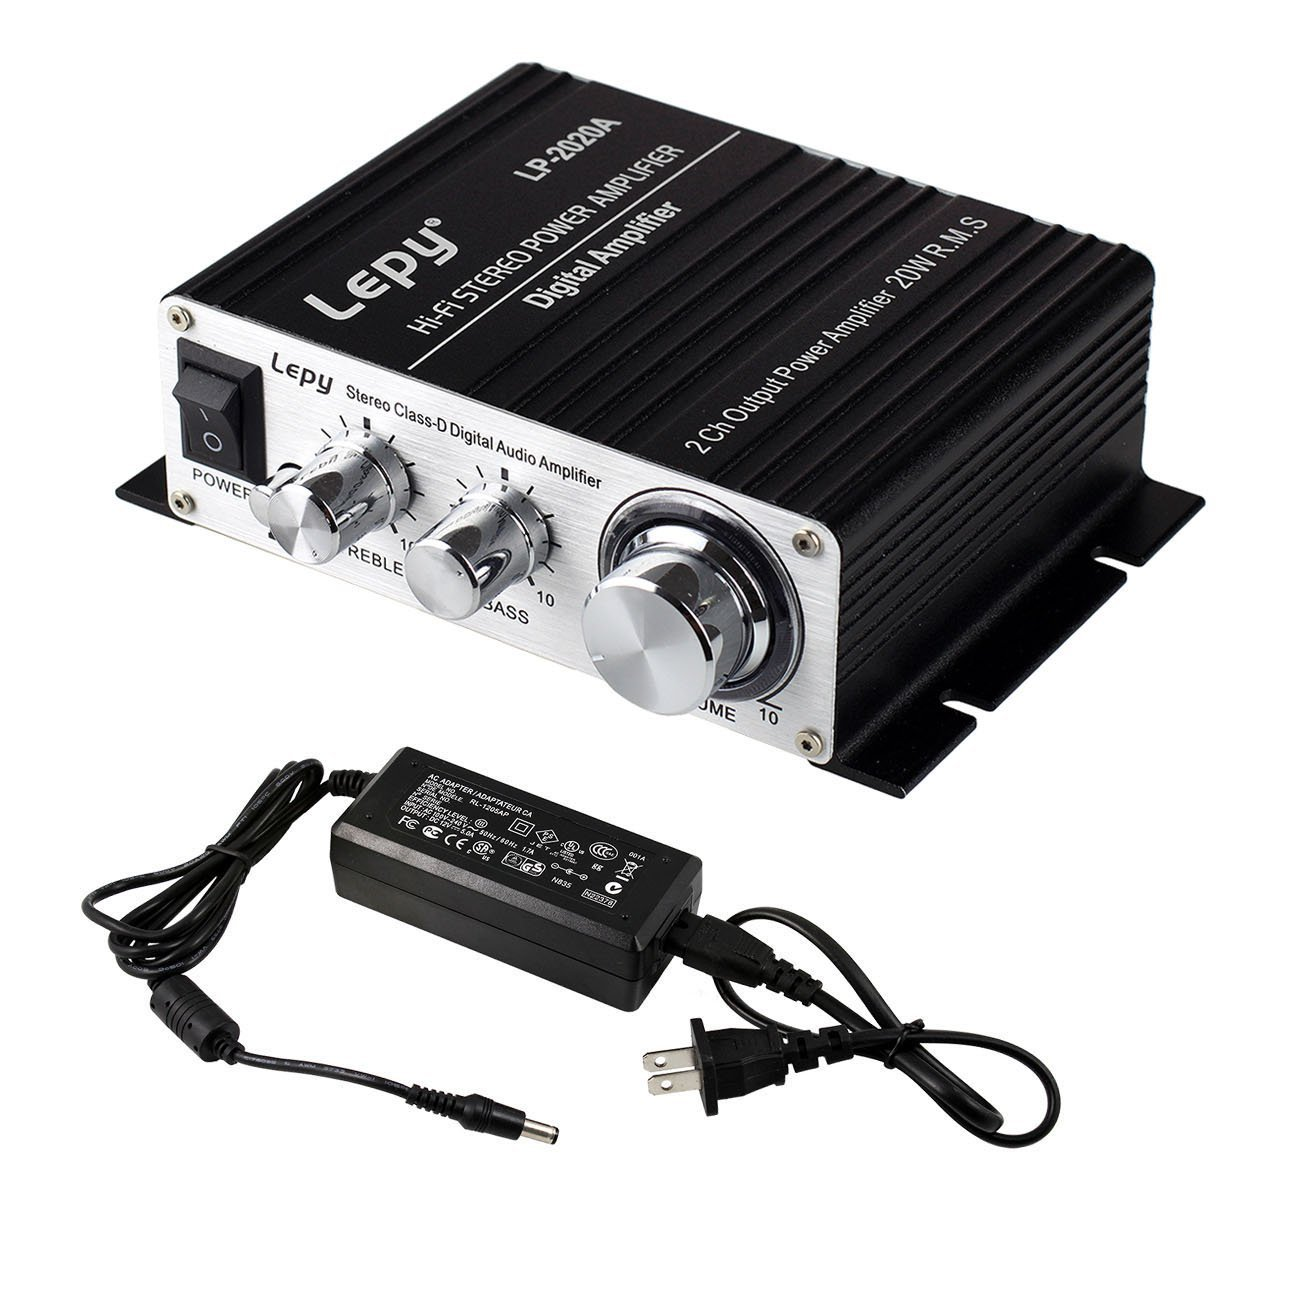 Lepy Lp 2020a Power Amplifier Stereo Hifi Digital Audio Lepai Tripath Ta2020 Class T Mini Amp Car Auto Motor With 5a Supply Black Musical Instruments